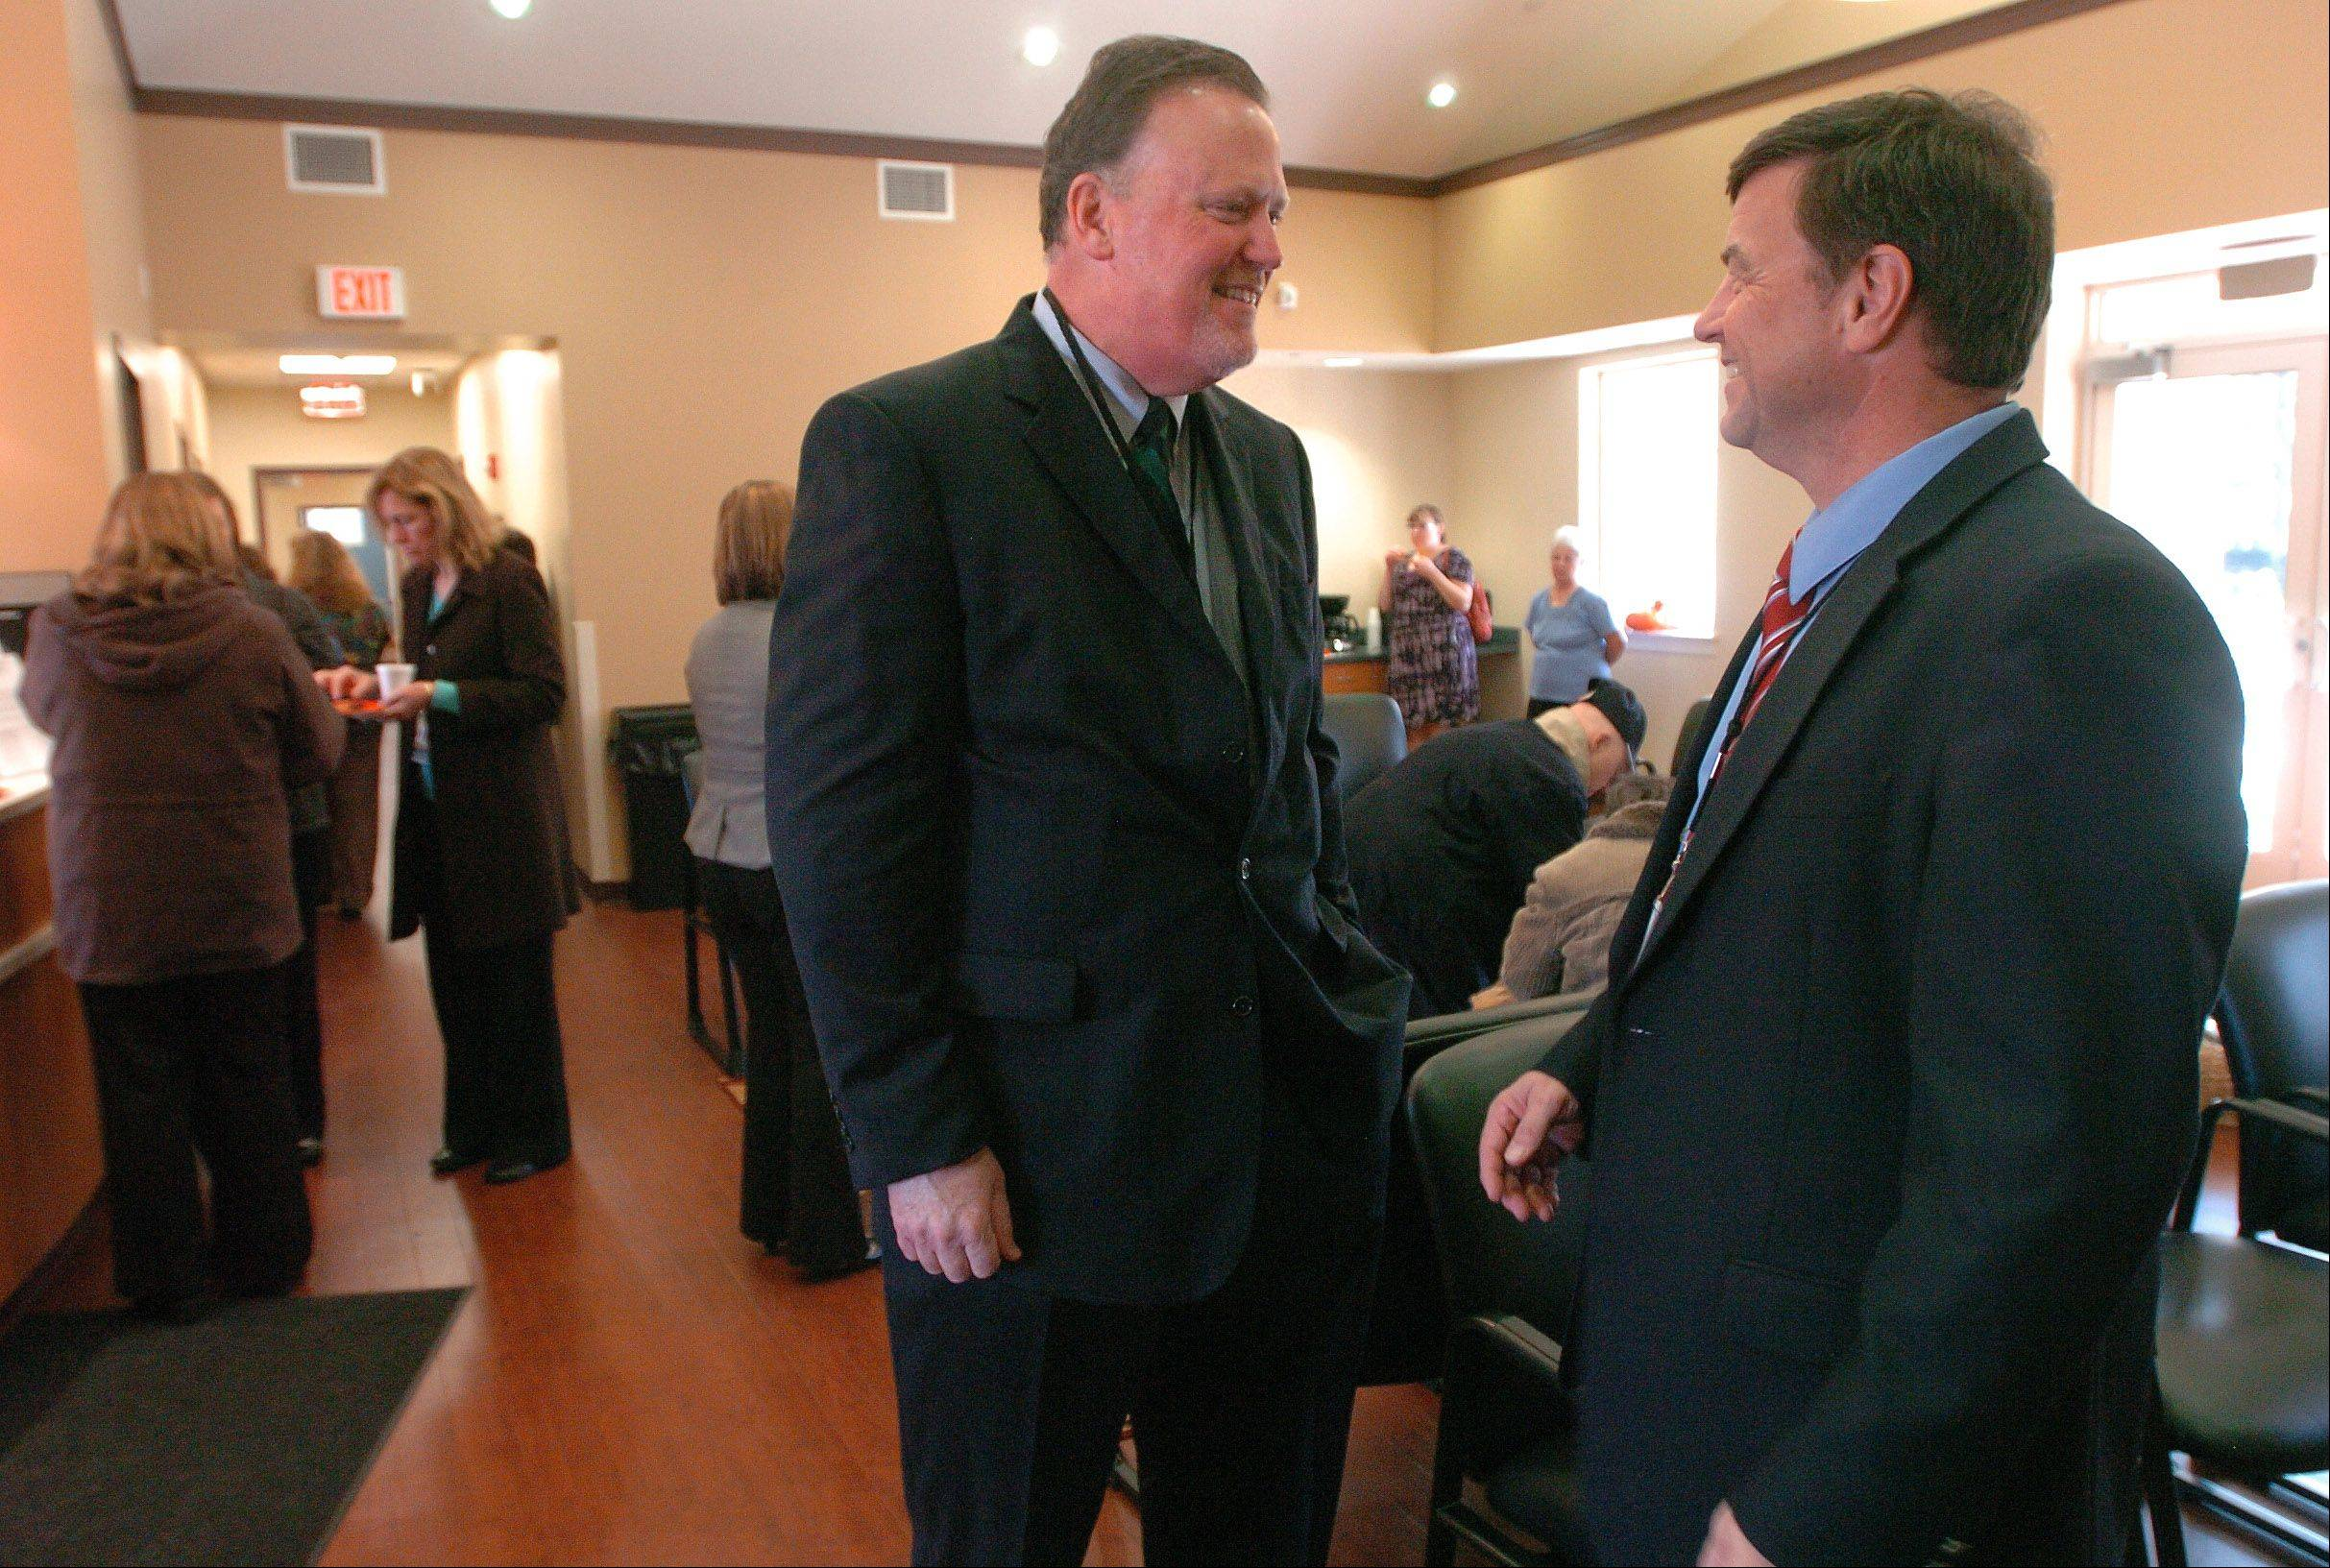 Brian J. Liedlich, vice president of development, Advocate Charitable Foundation, left, visits with Dr. Brian Chicoine.